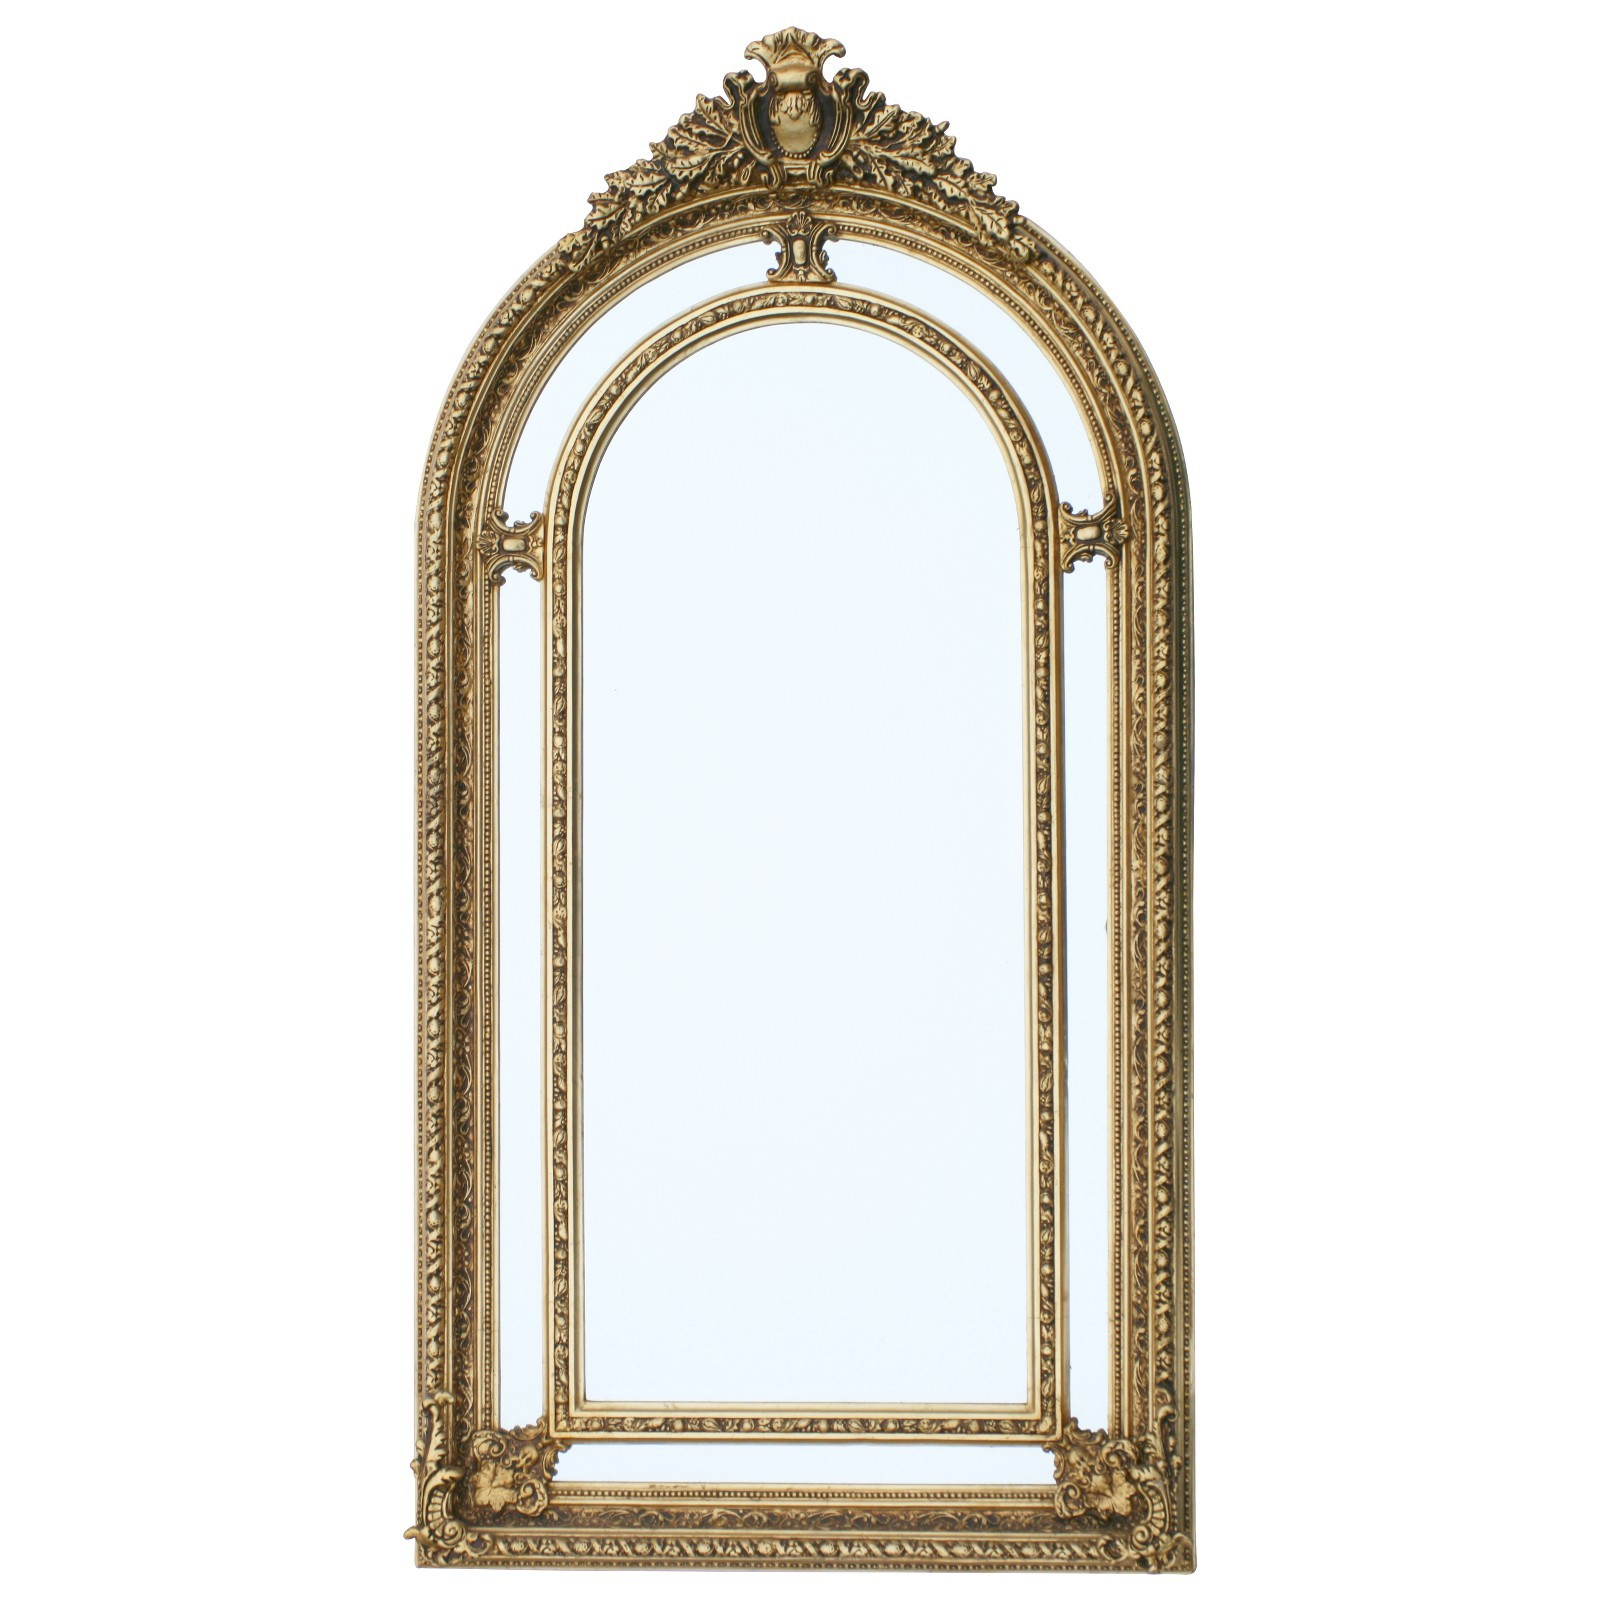 Mirror luxurious with gold frame Baroque luxury large wall mirror ...